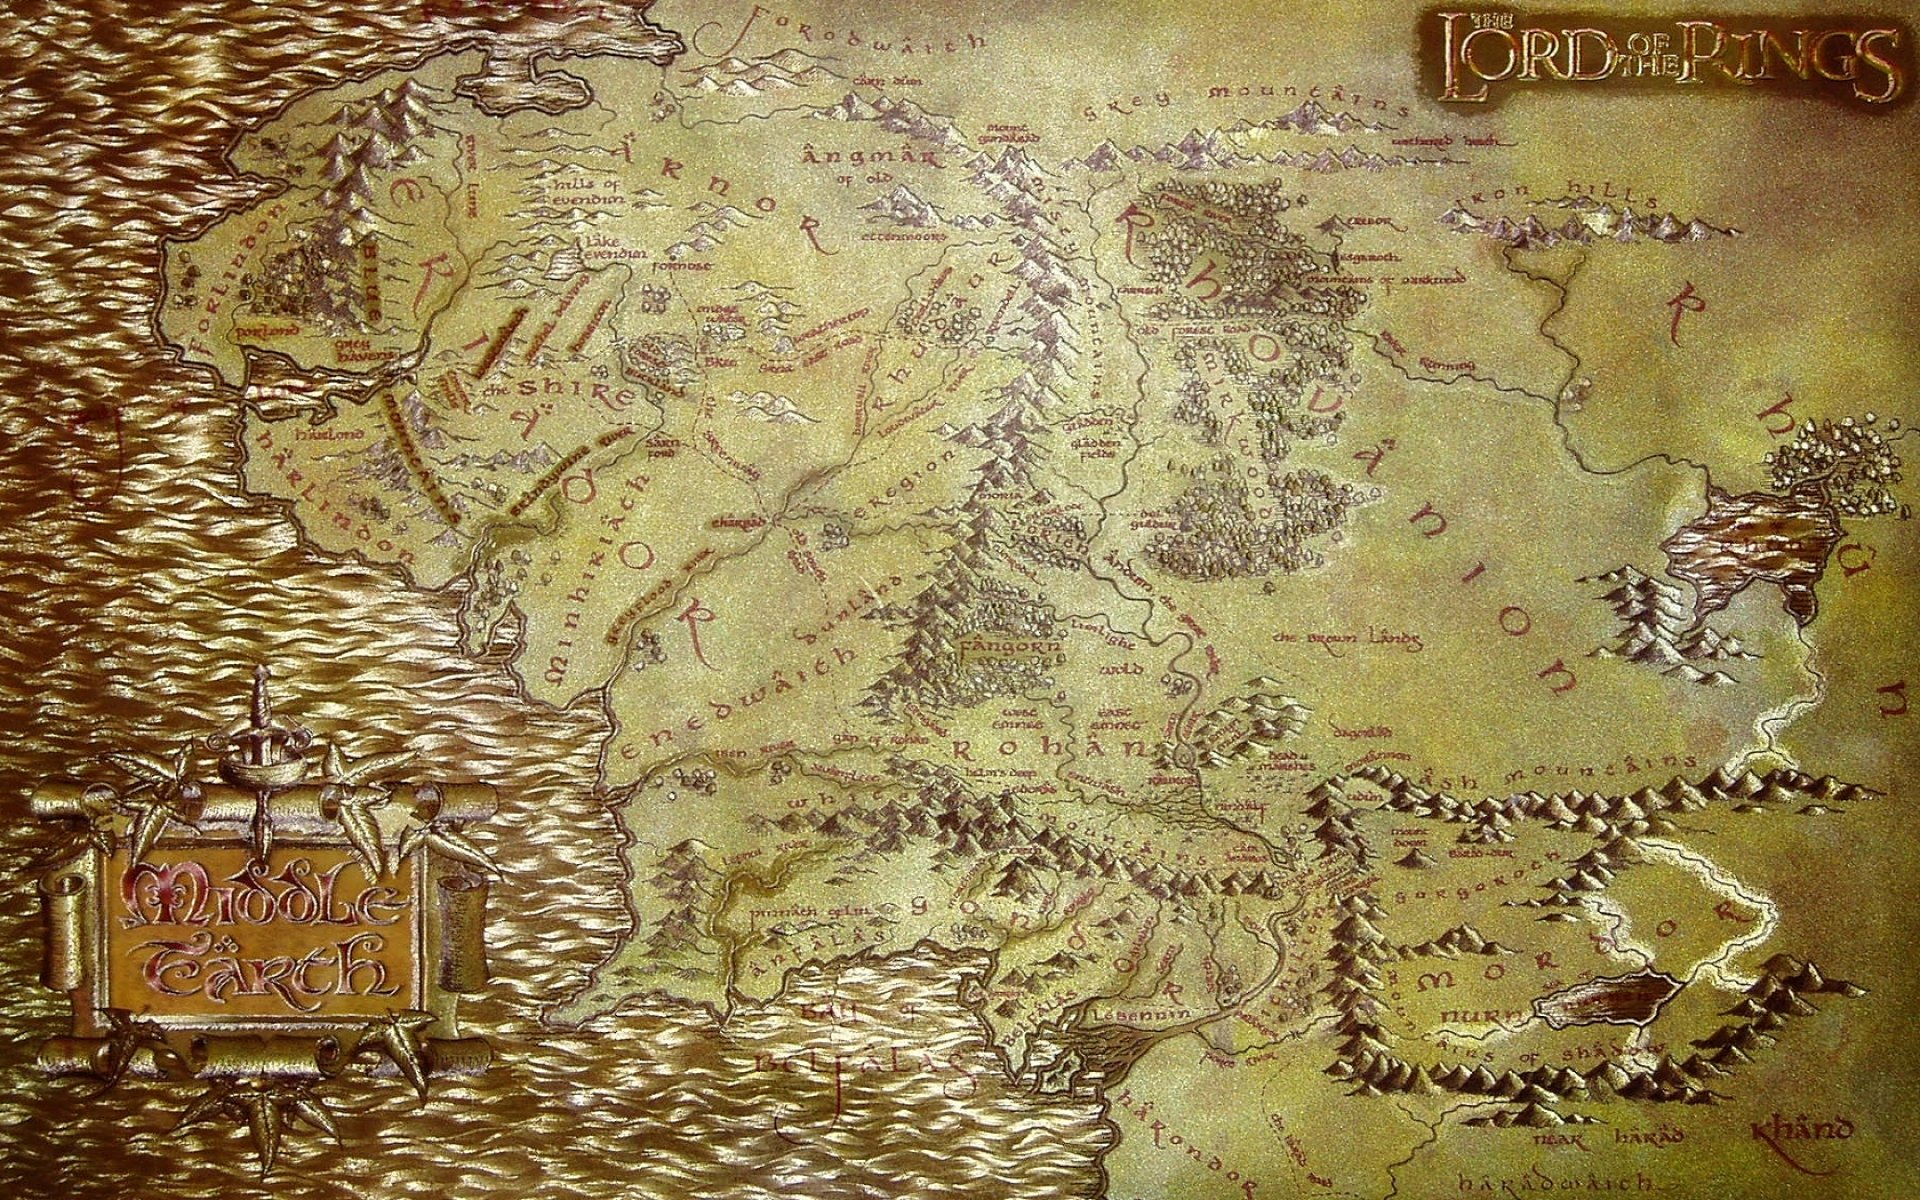 1920x1200 the lord of the rings maps middle earth 1680x1050 wallpaper 1920x1200